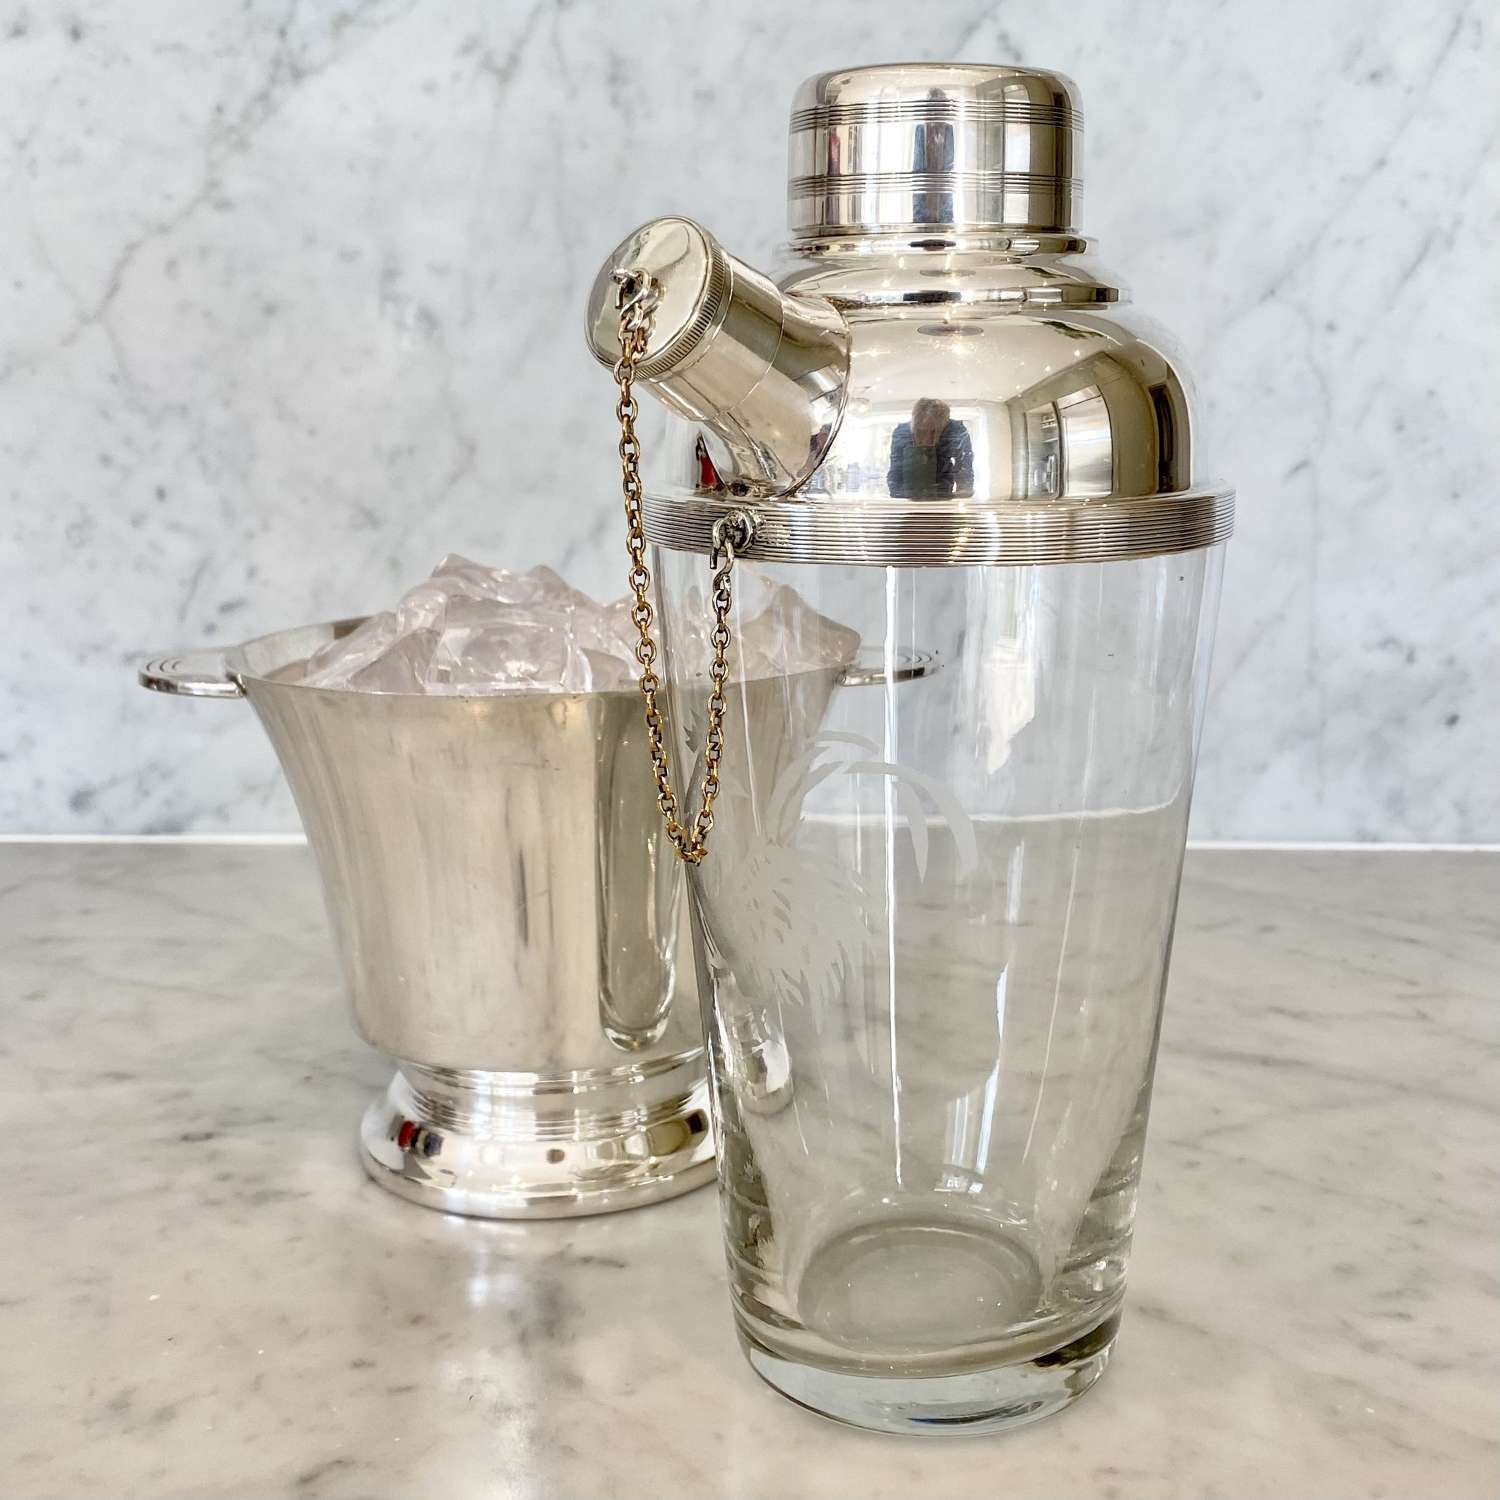 Large cockerel etched glass silver plated side spout cocktail shaker